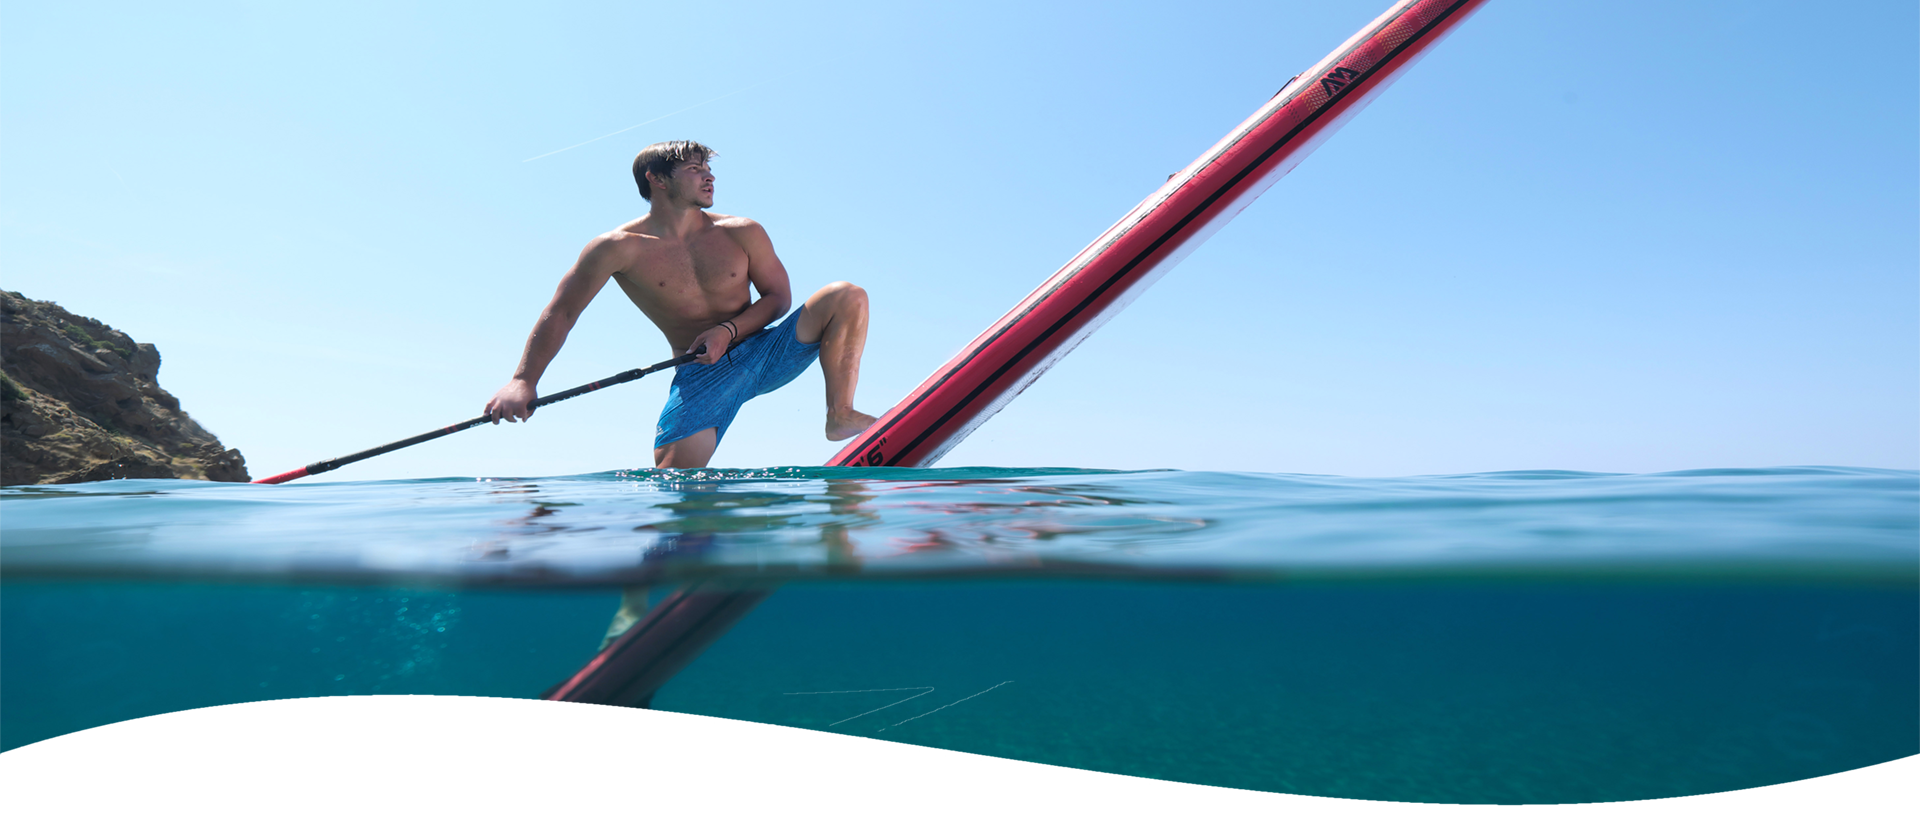 SUP Stand Up Paddleboard Romania